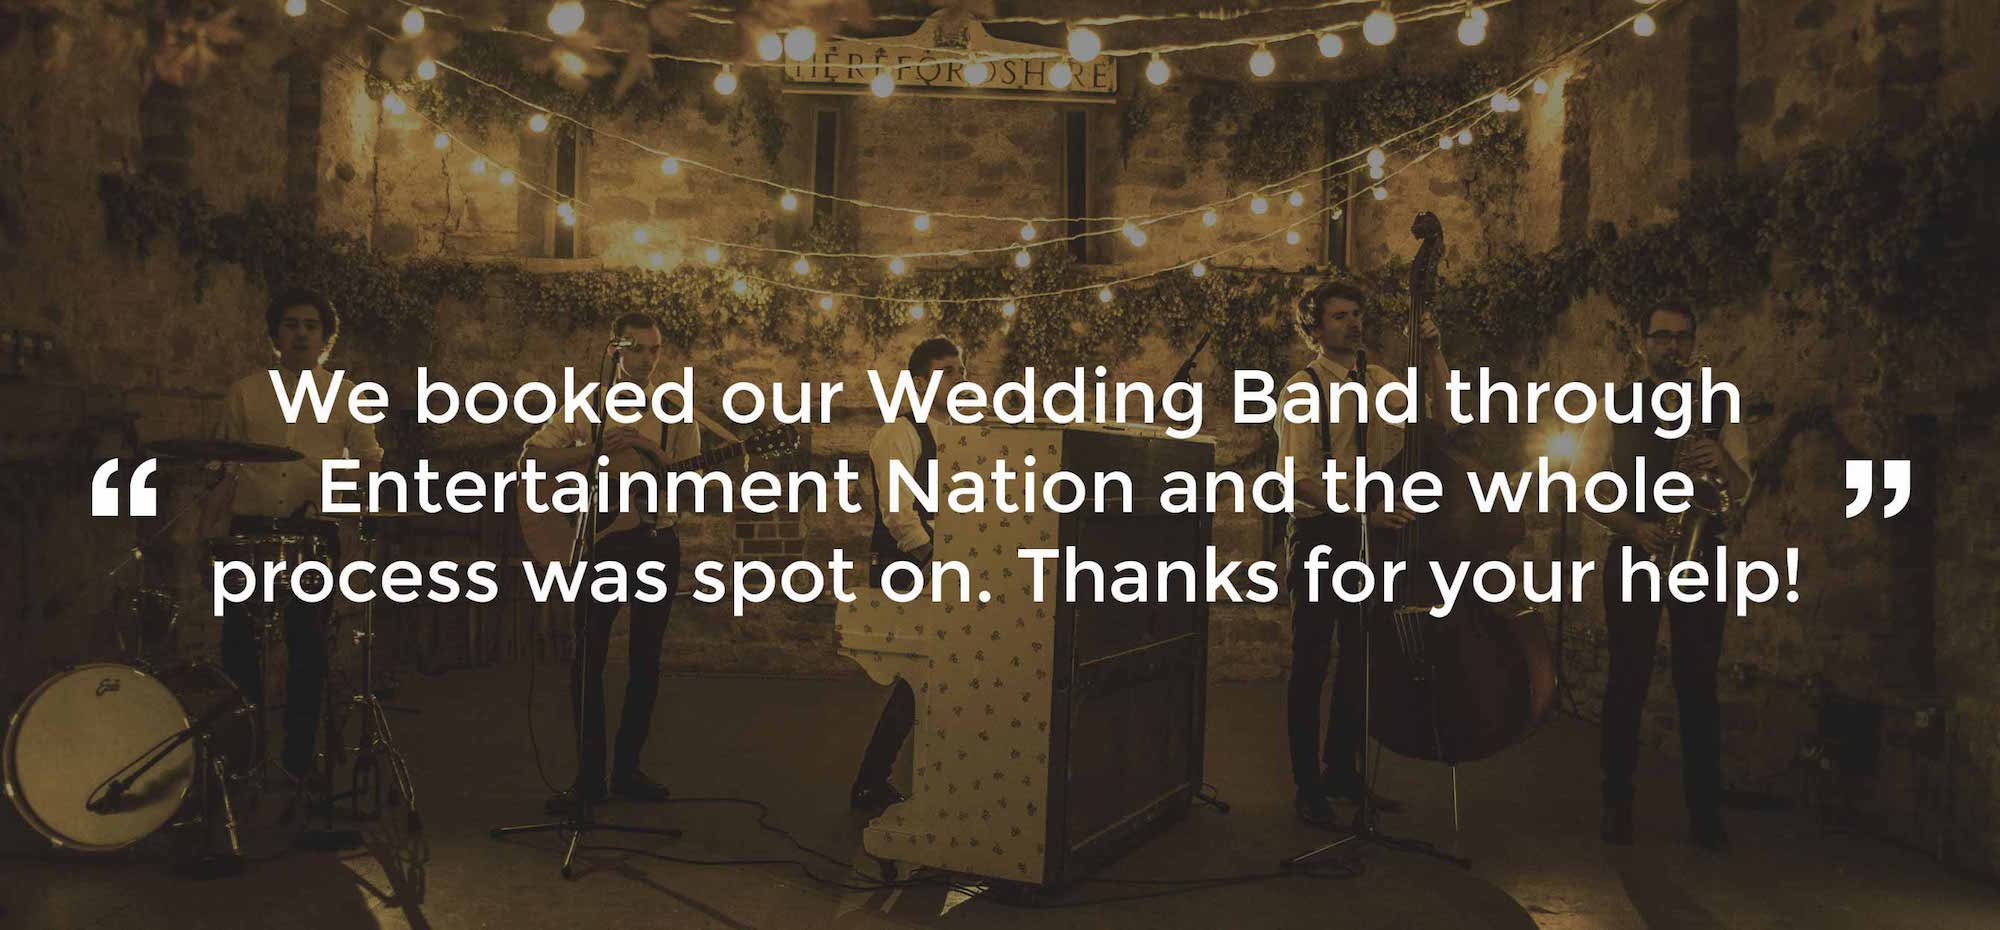 Review of Wedding Band Newcastle upon Tyne